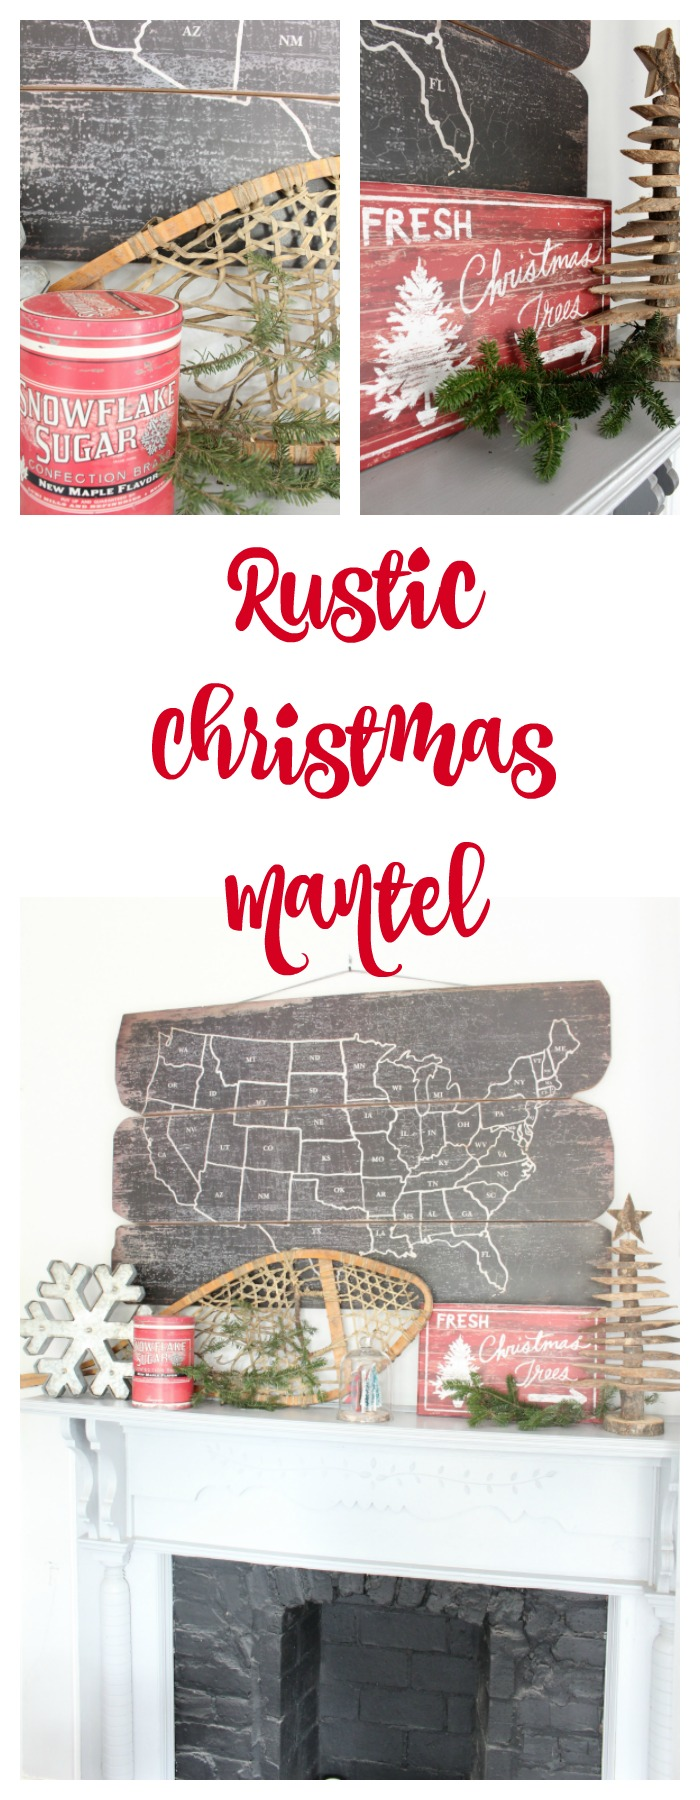 rustic-christmas-kitchen-mantel